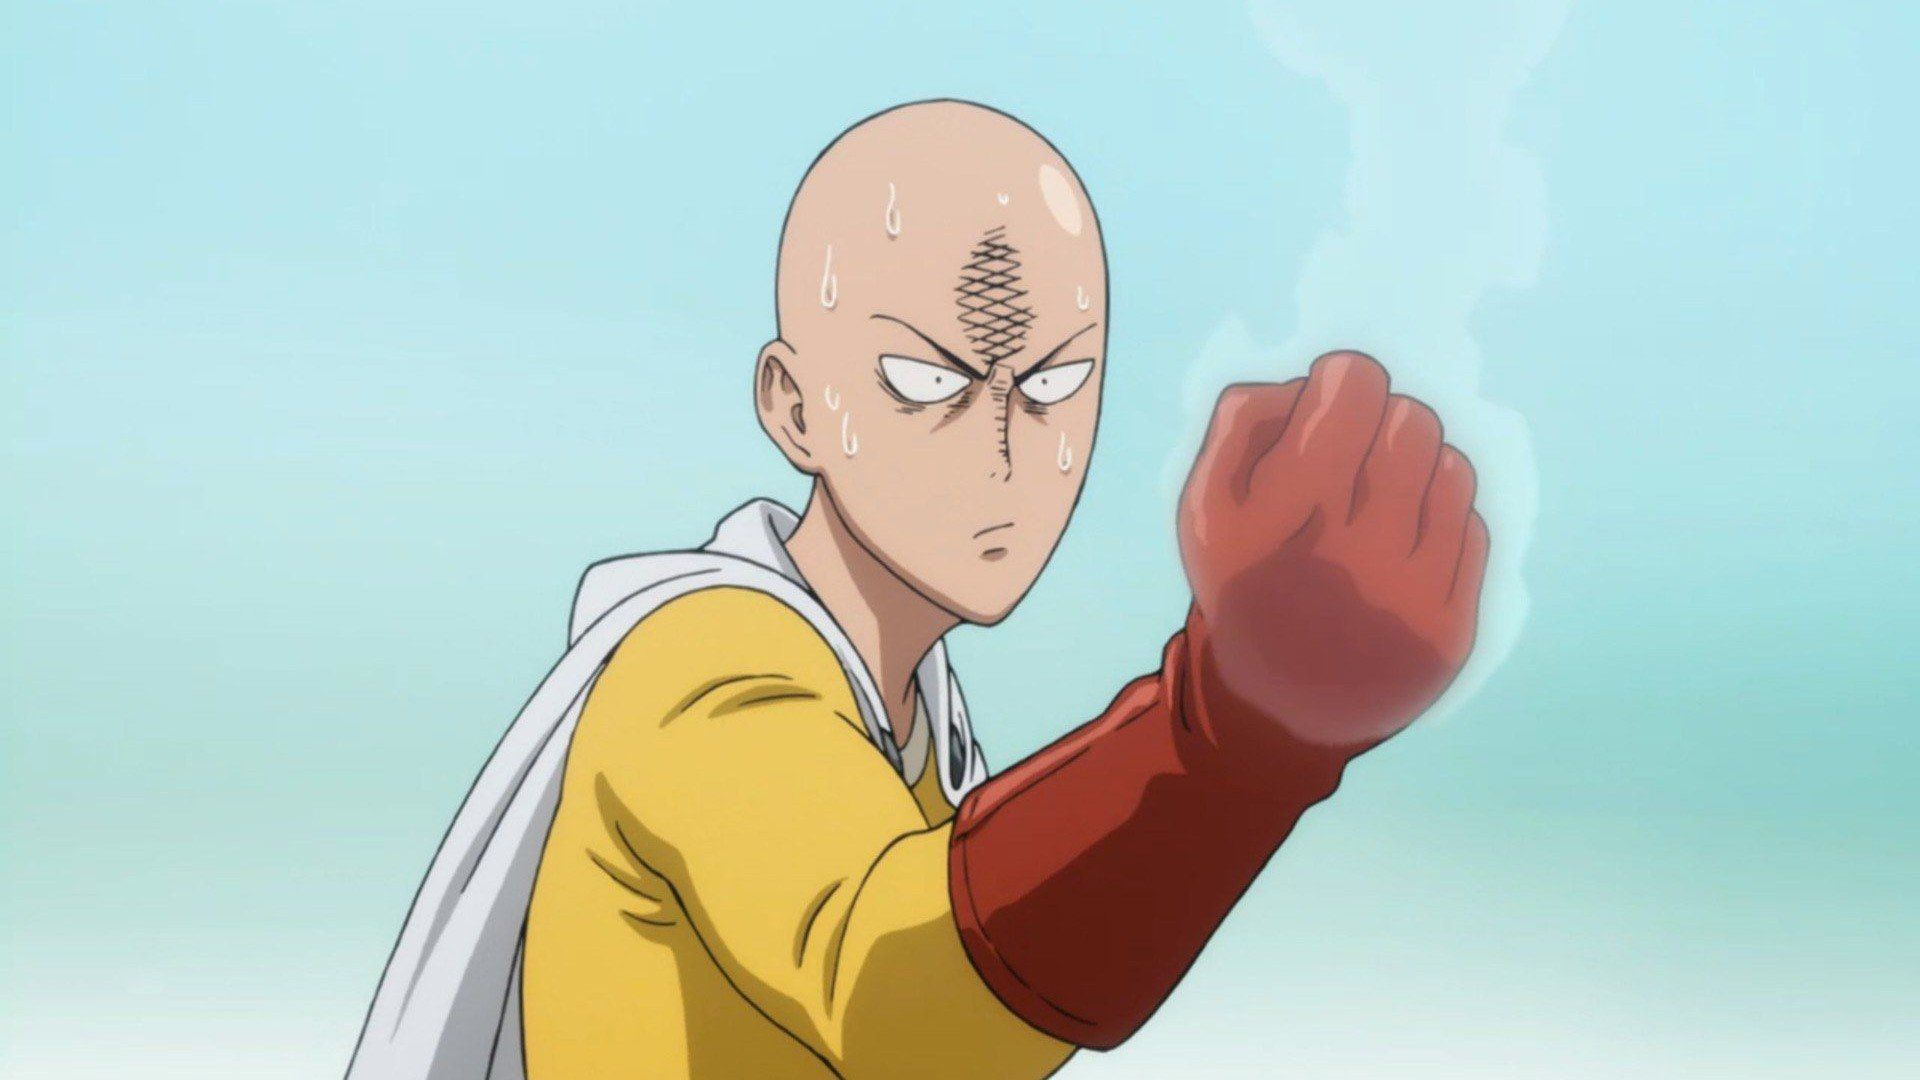 One Punch Man Saison 2 Episode 3 One Punch Man Season 2 Episode 11 Release Date And Watch Online Legally One Punch Man One Punch Man Anime Saitama One Punch Man